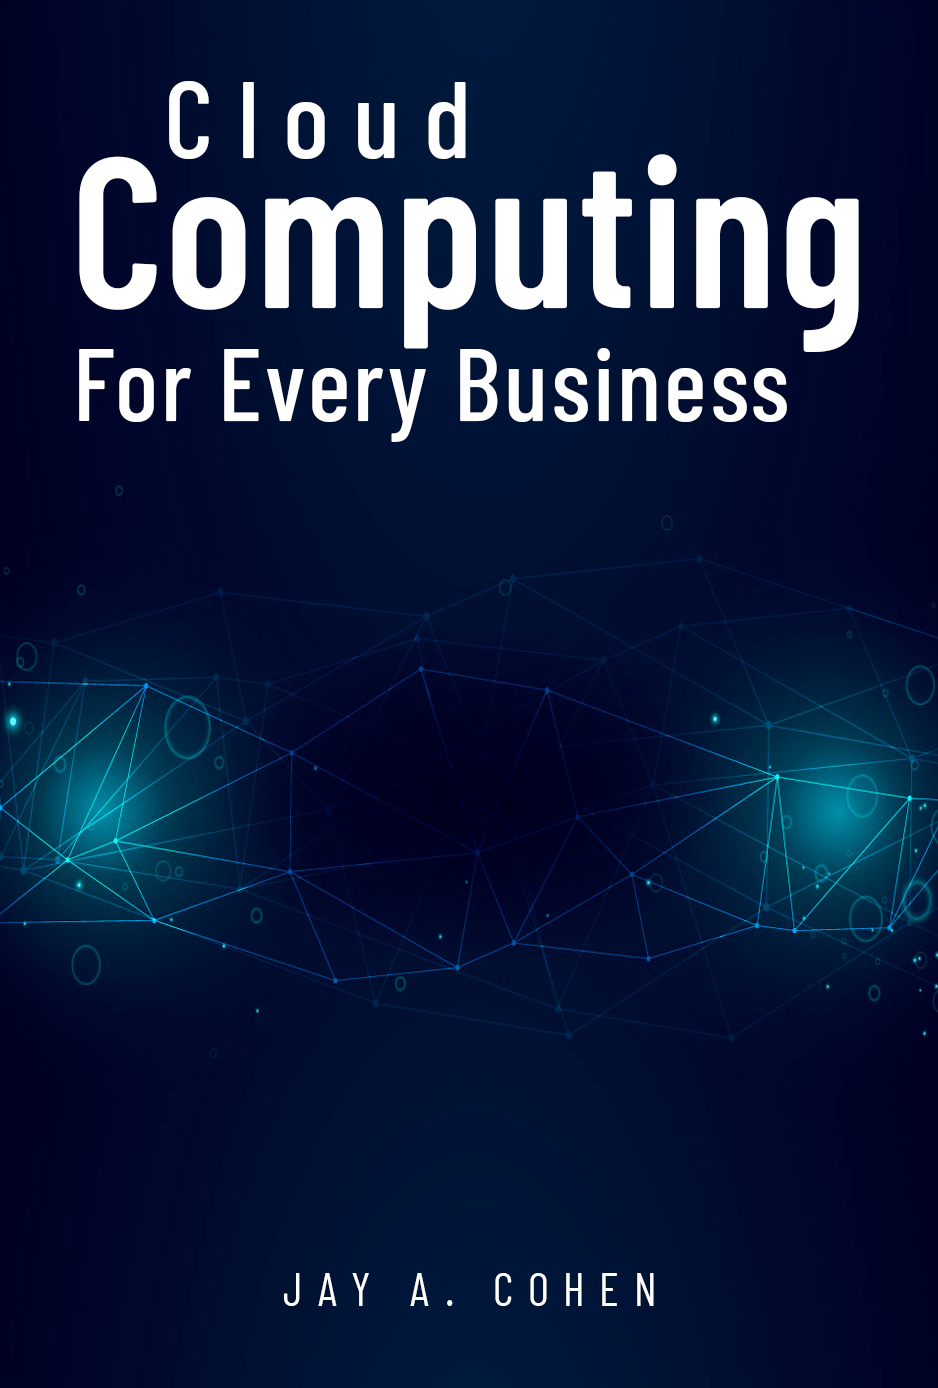 Cloud Computing for Every Business book cover